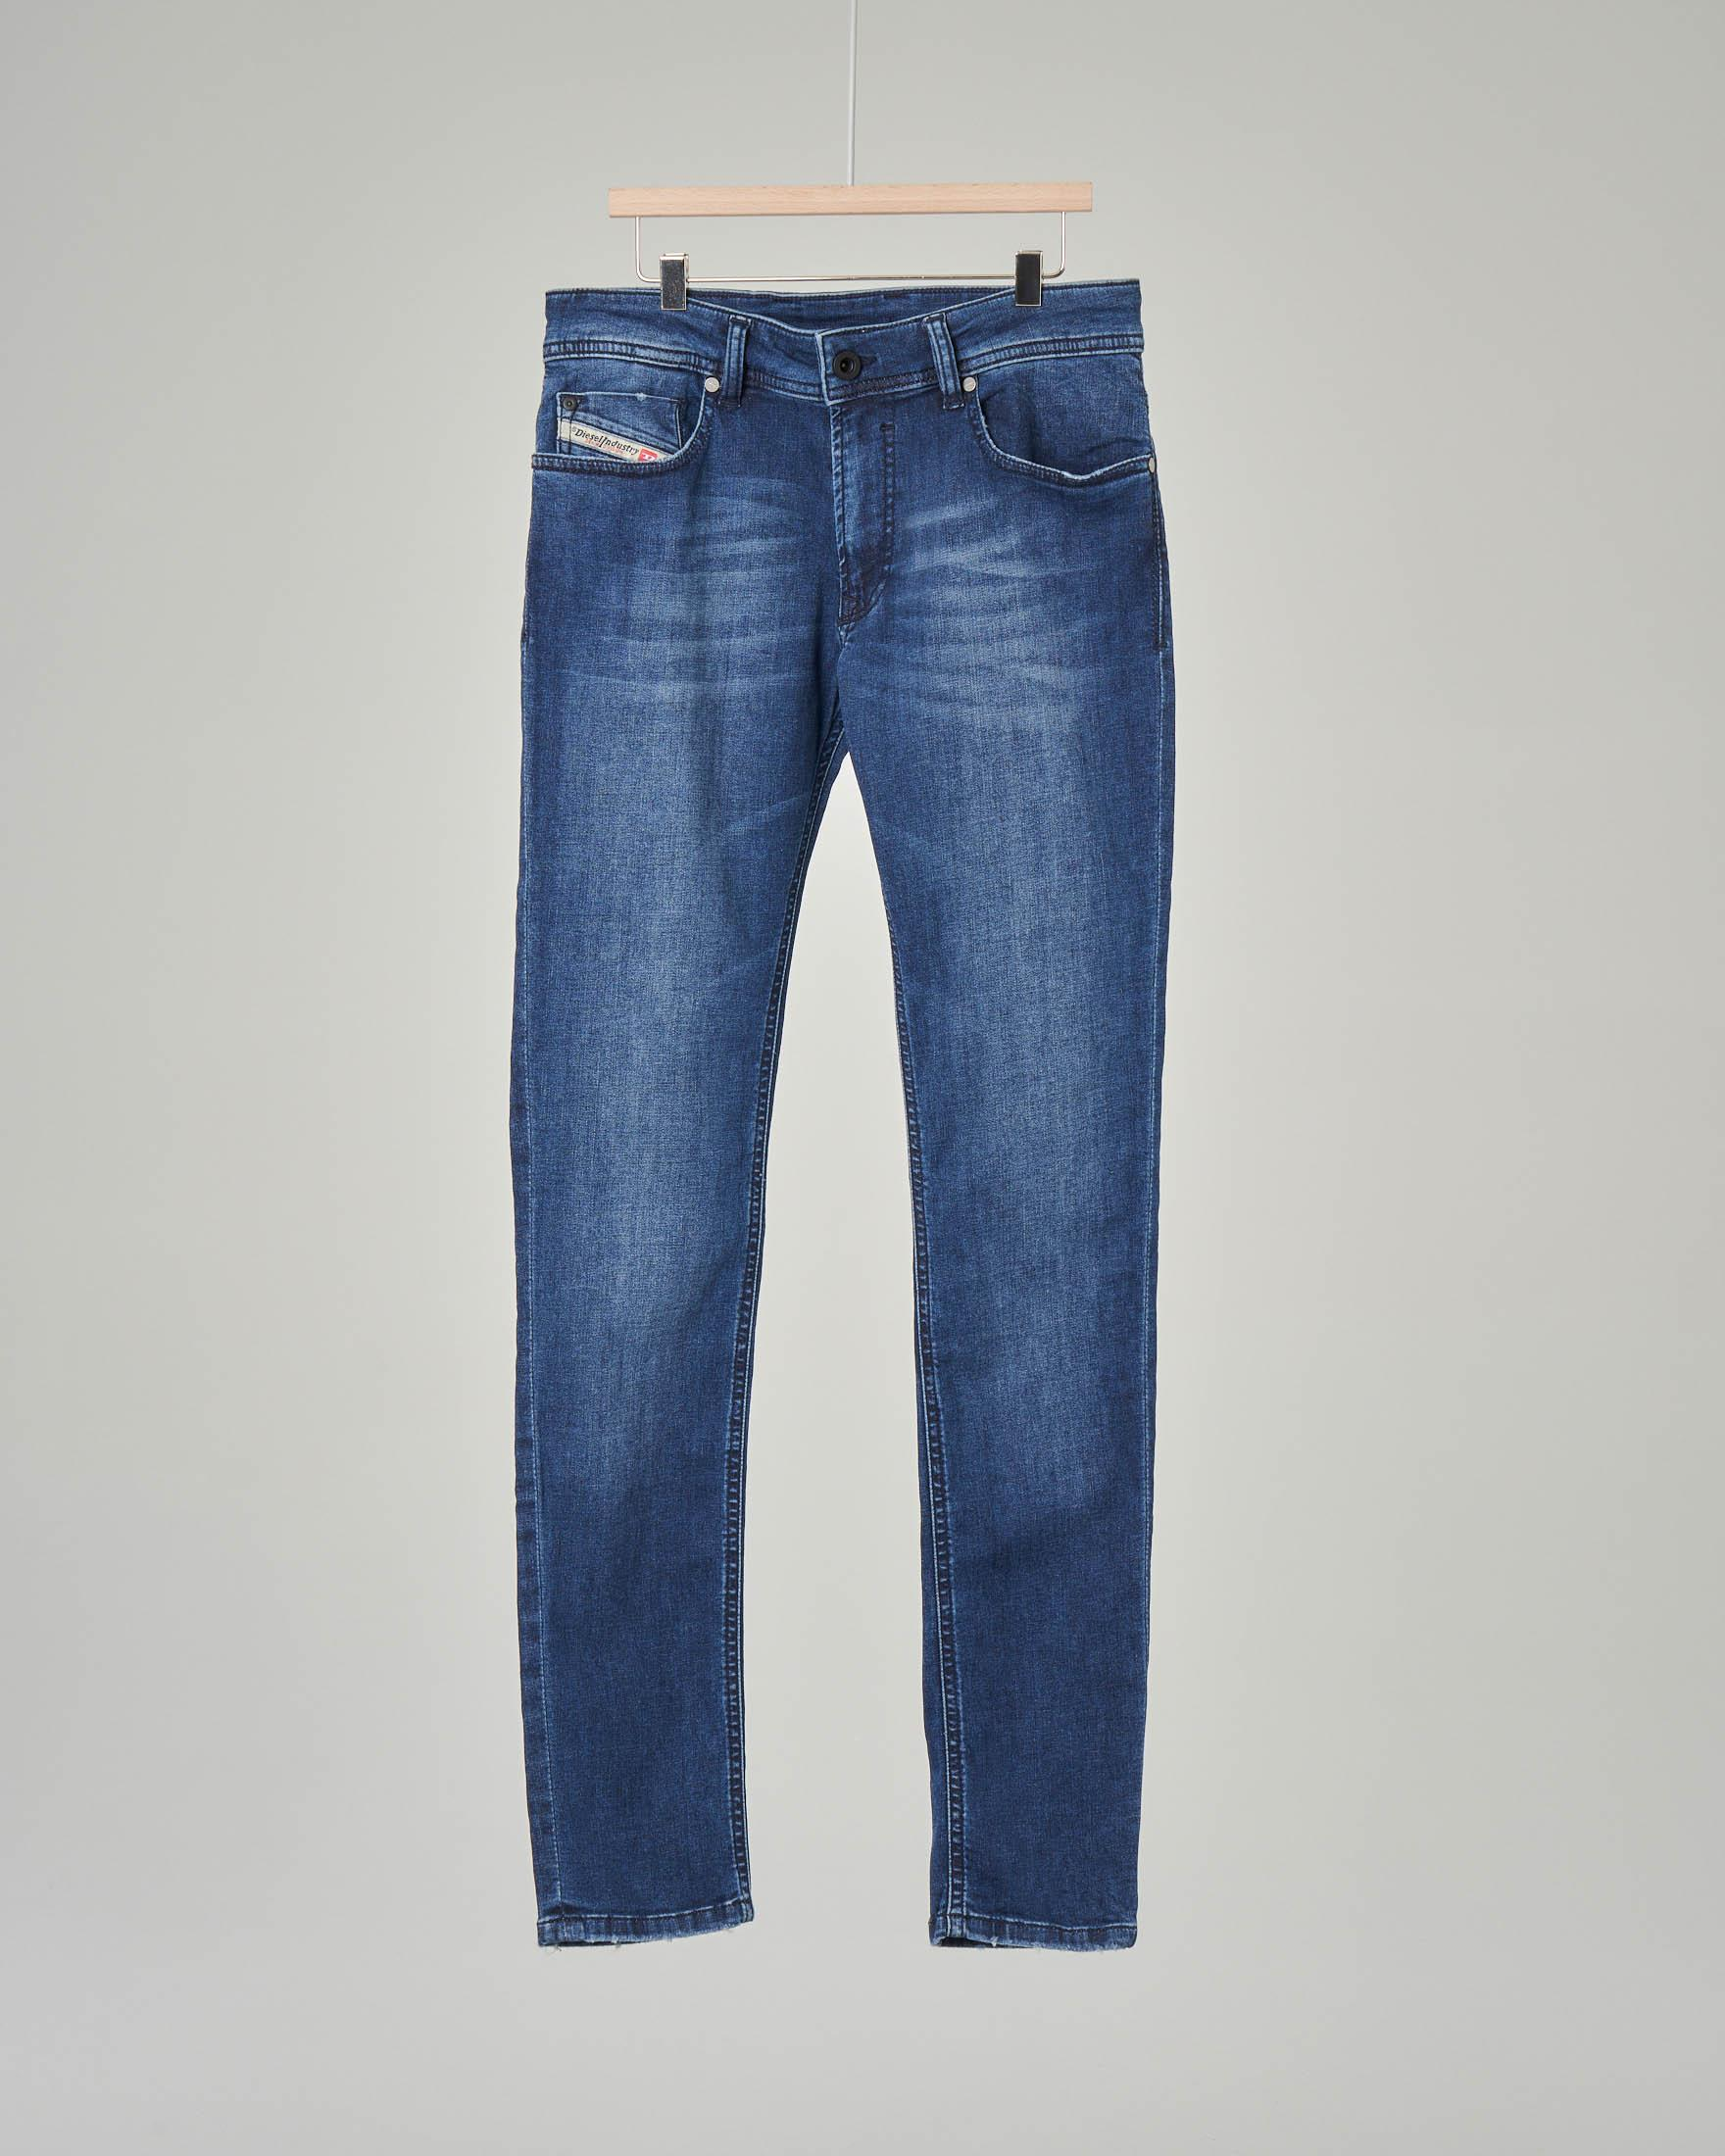 Jeans Sleenker lavaggio scuro